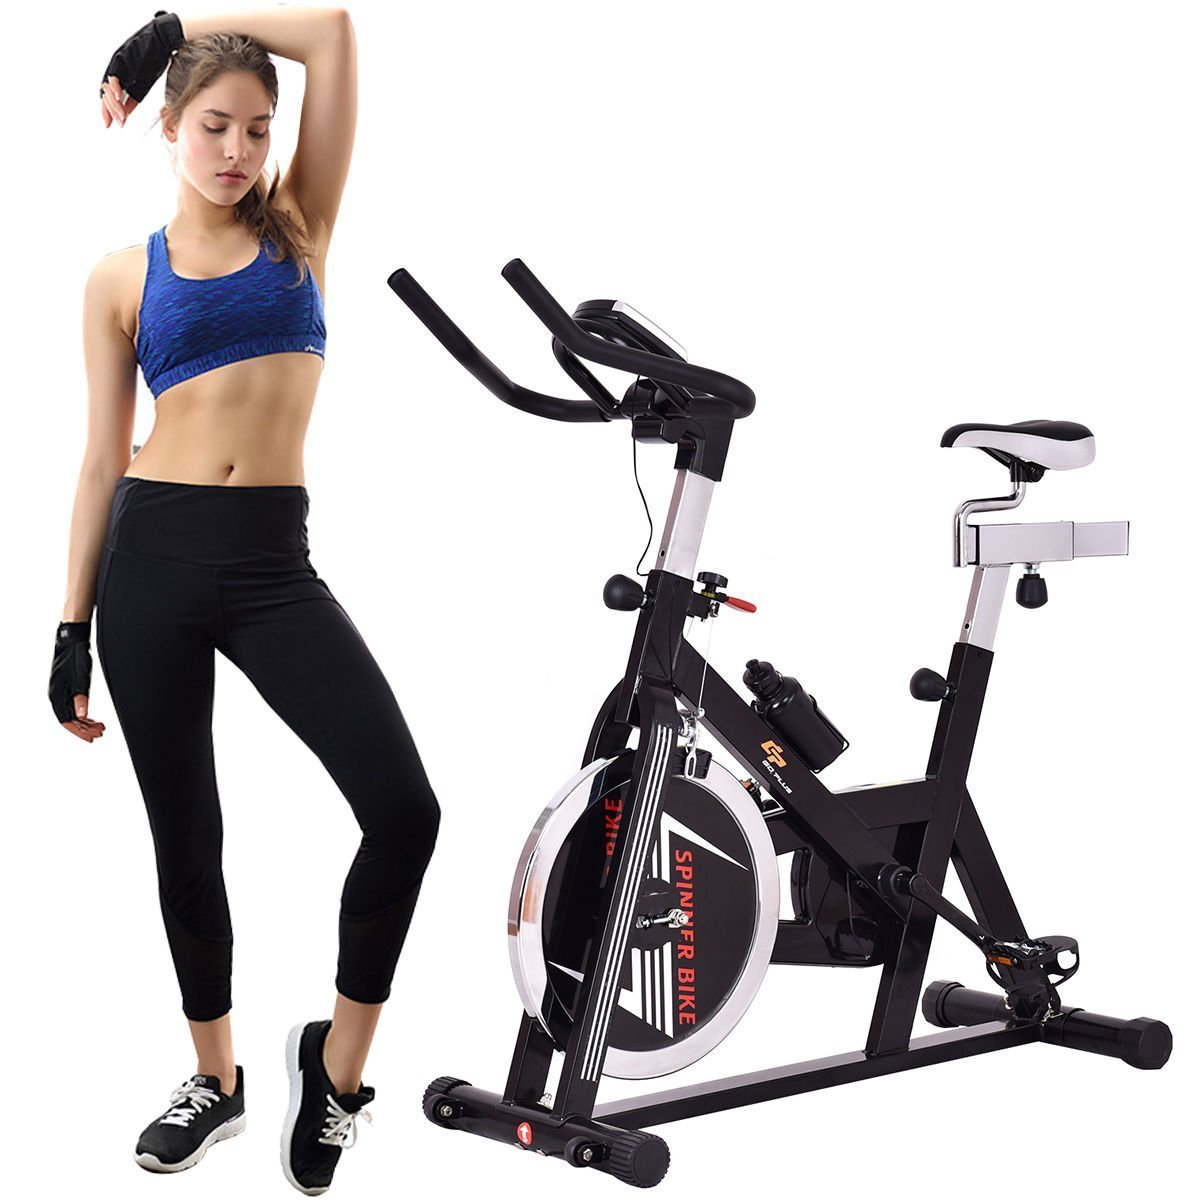 Gymax Stationary Exercise Bike w/ Adjustable Seat and Handlebars, Indoor Cycling Bike Cardio Fitness Home Gym Equipment